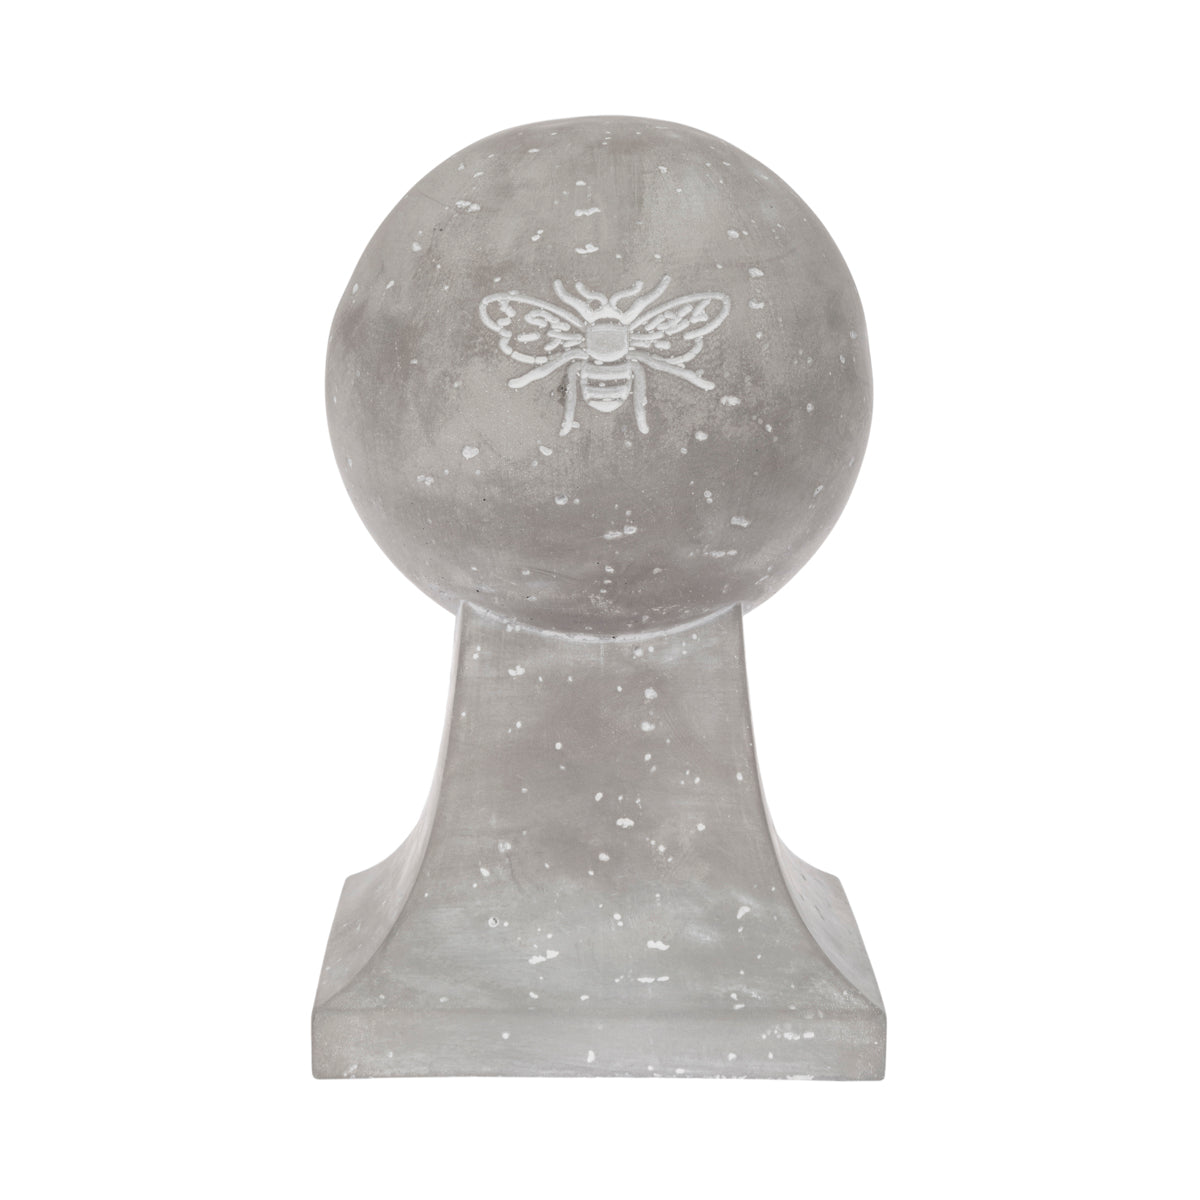 Bees Decorative Ball Plinth by Sophie Allport